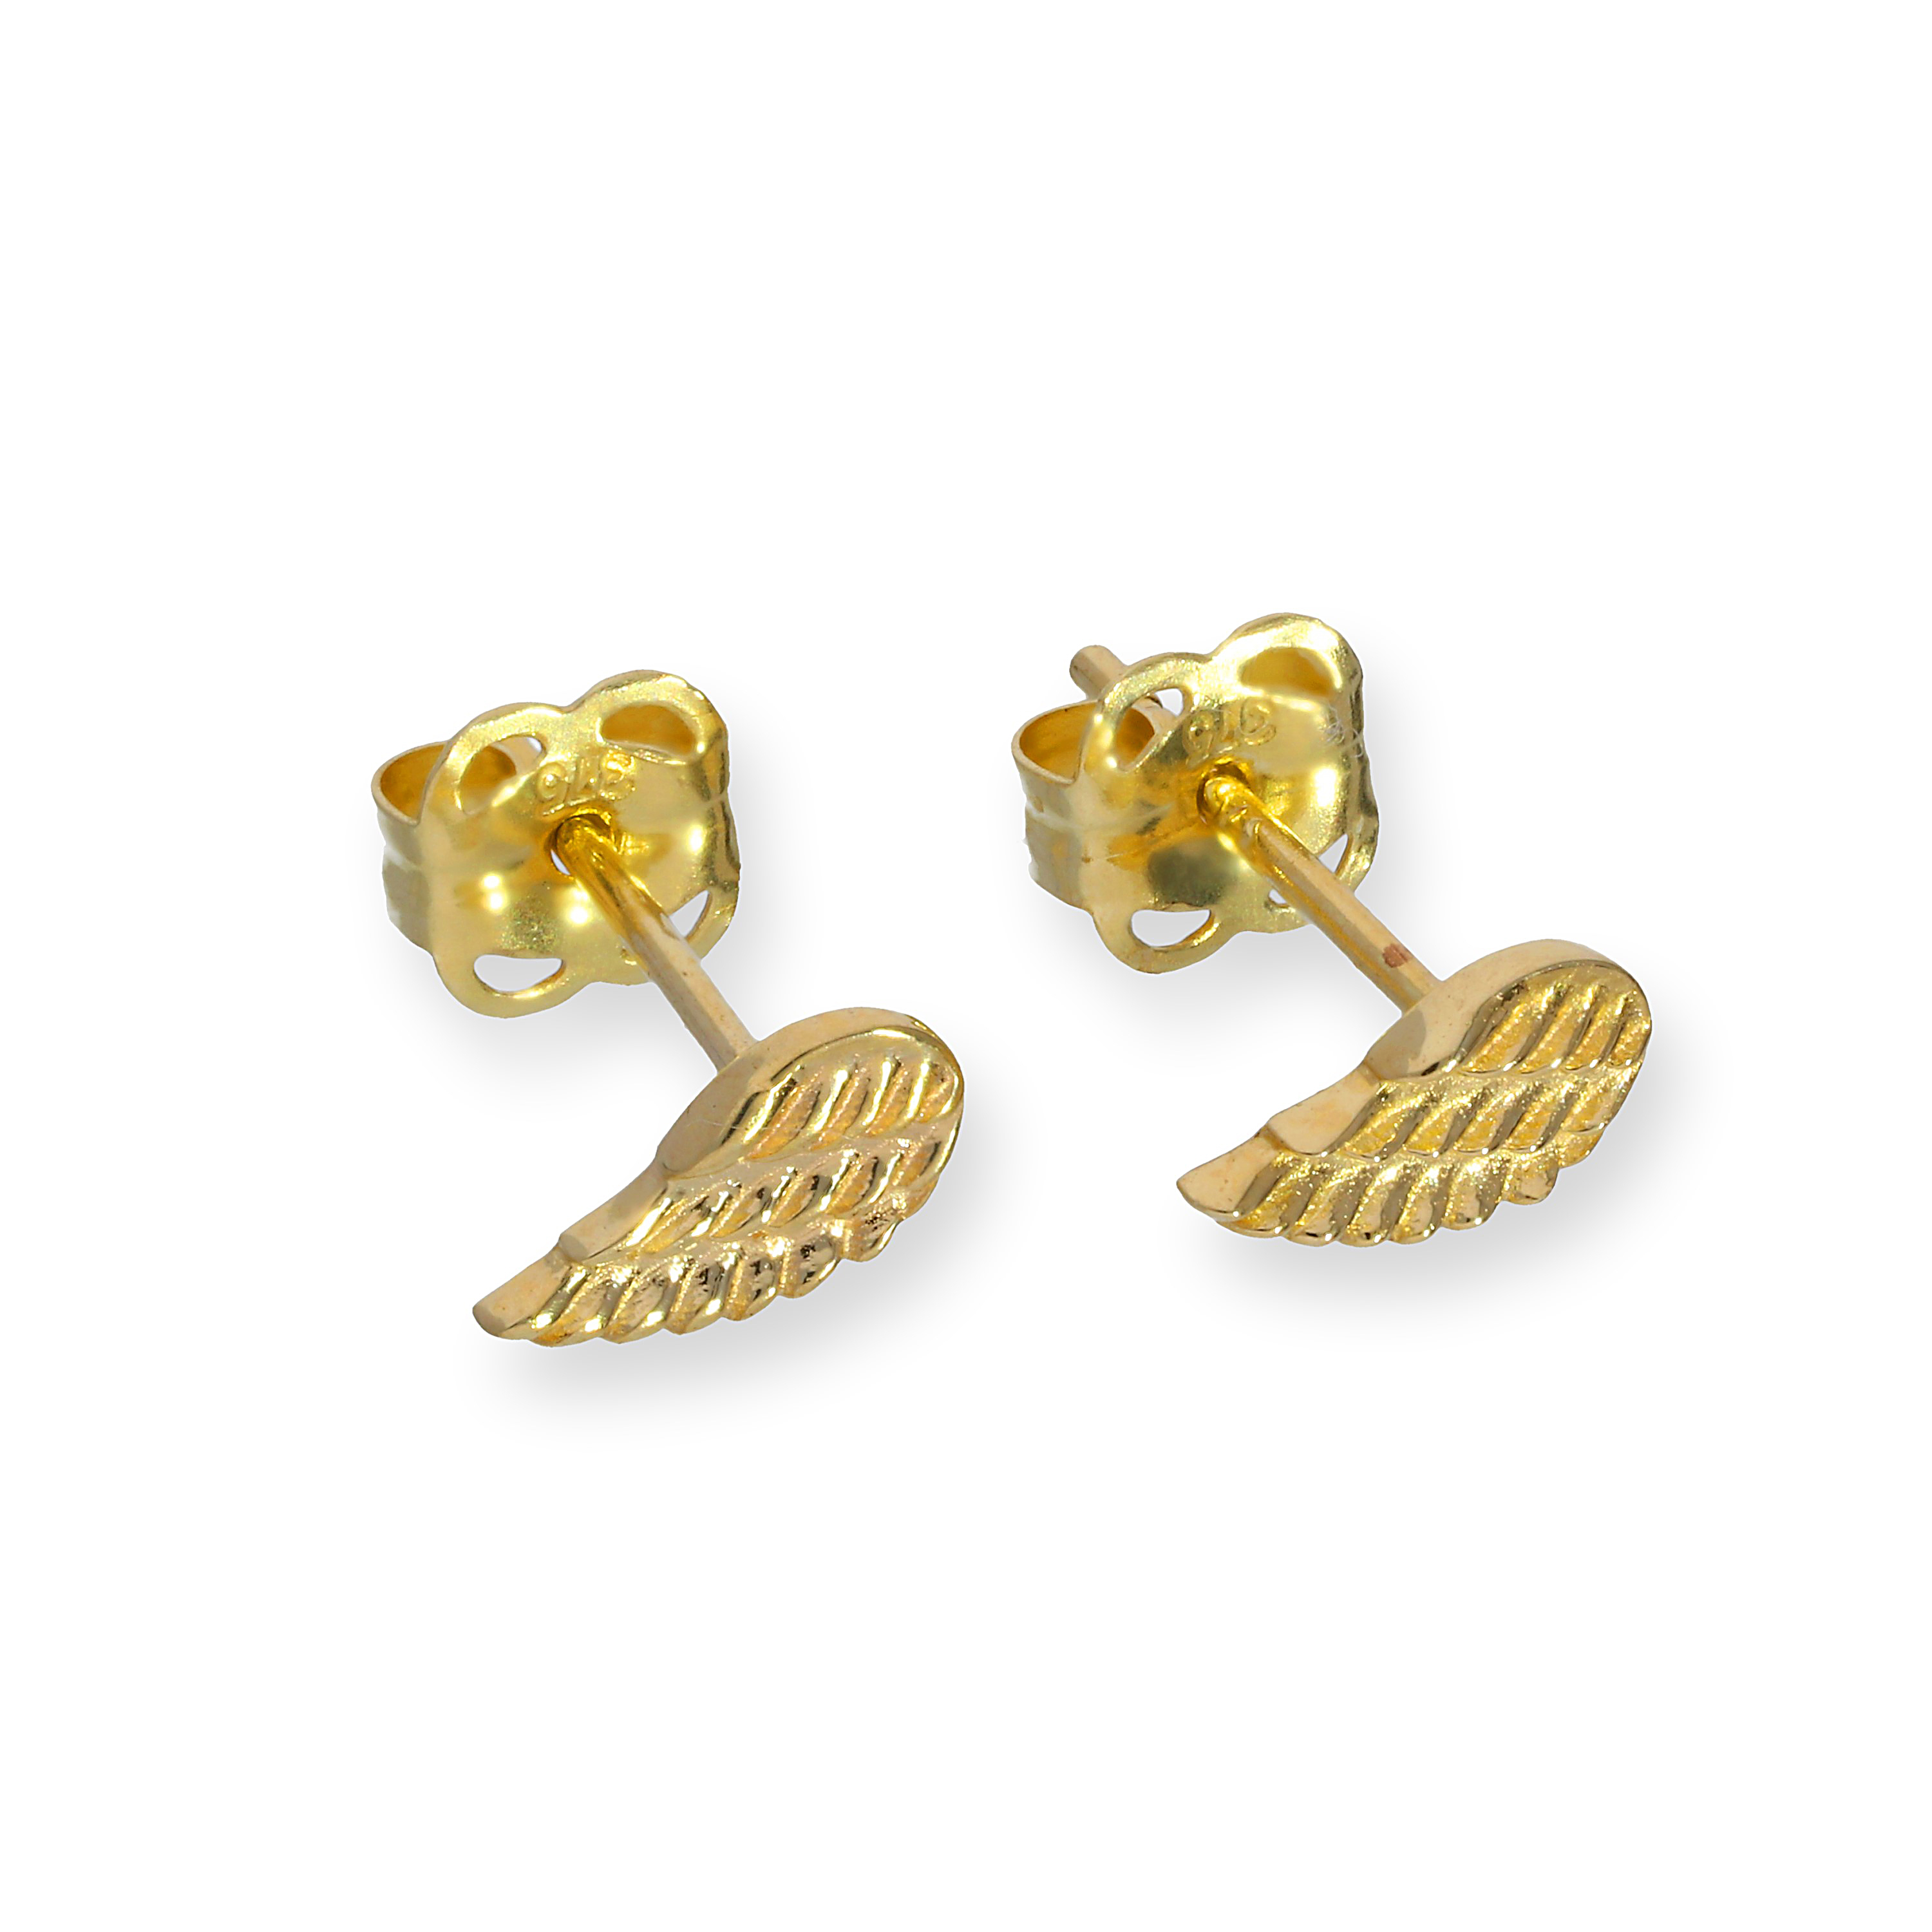 JSK-002_9ct_Gold_Angel_Wing_Stud_Earrings